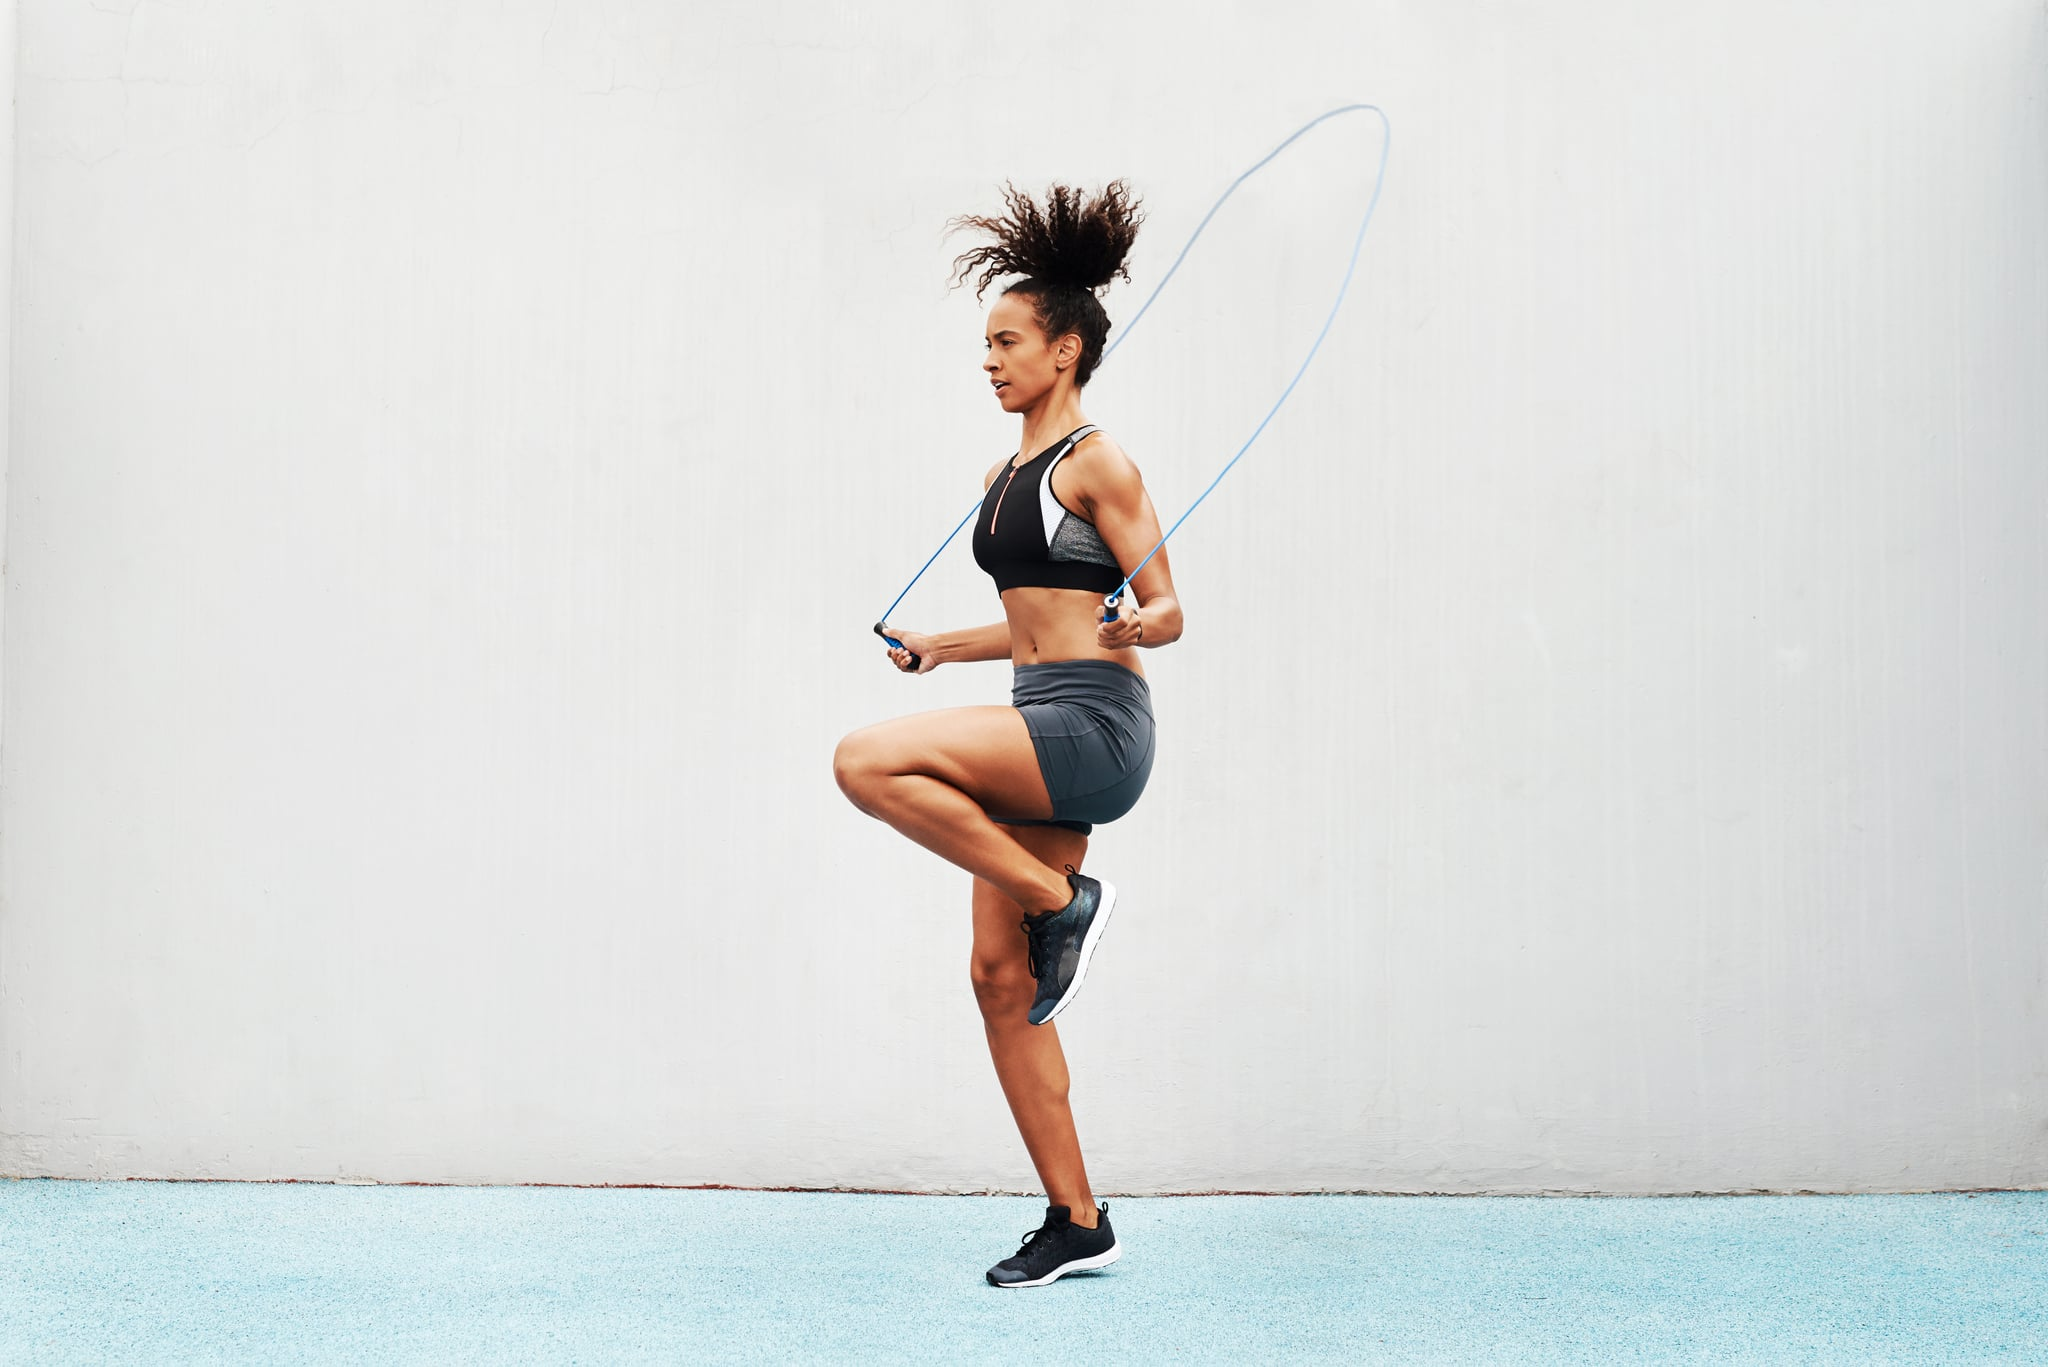 Full length shot of an attractive young athlete using a skipping rope during an outdoor training session